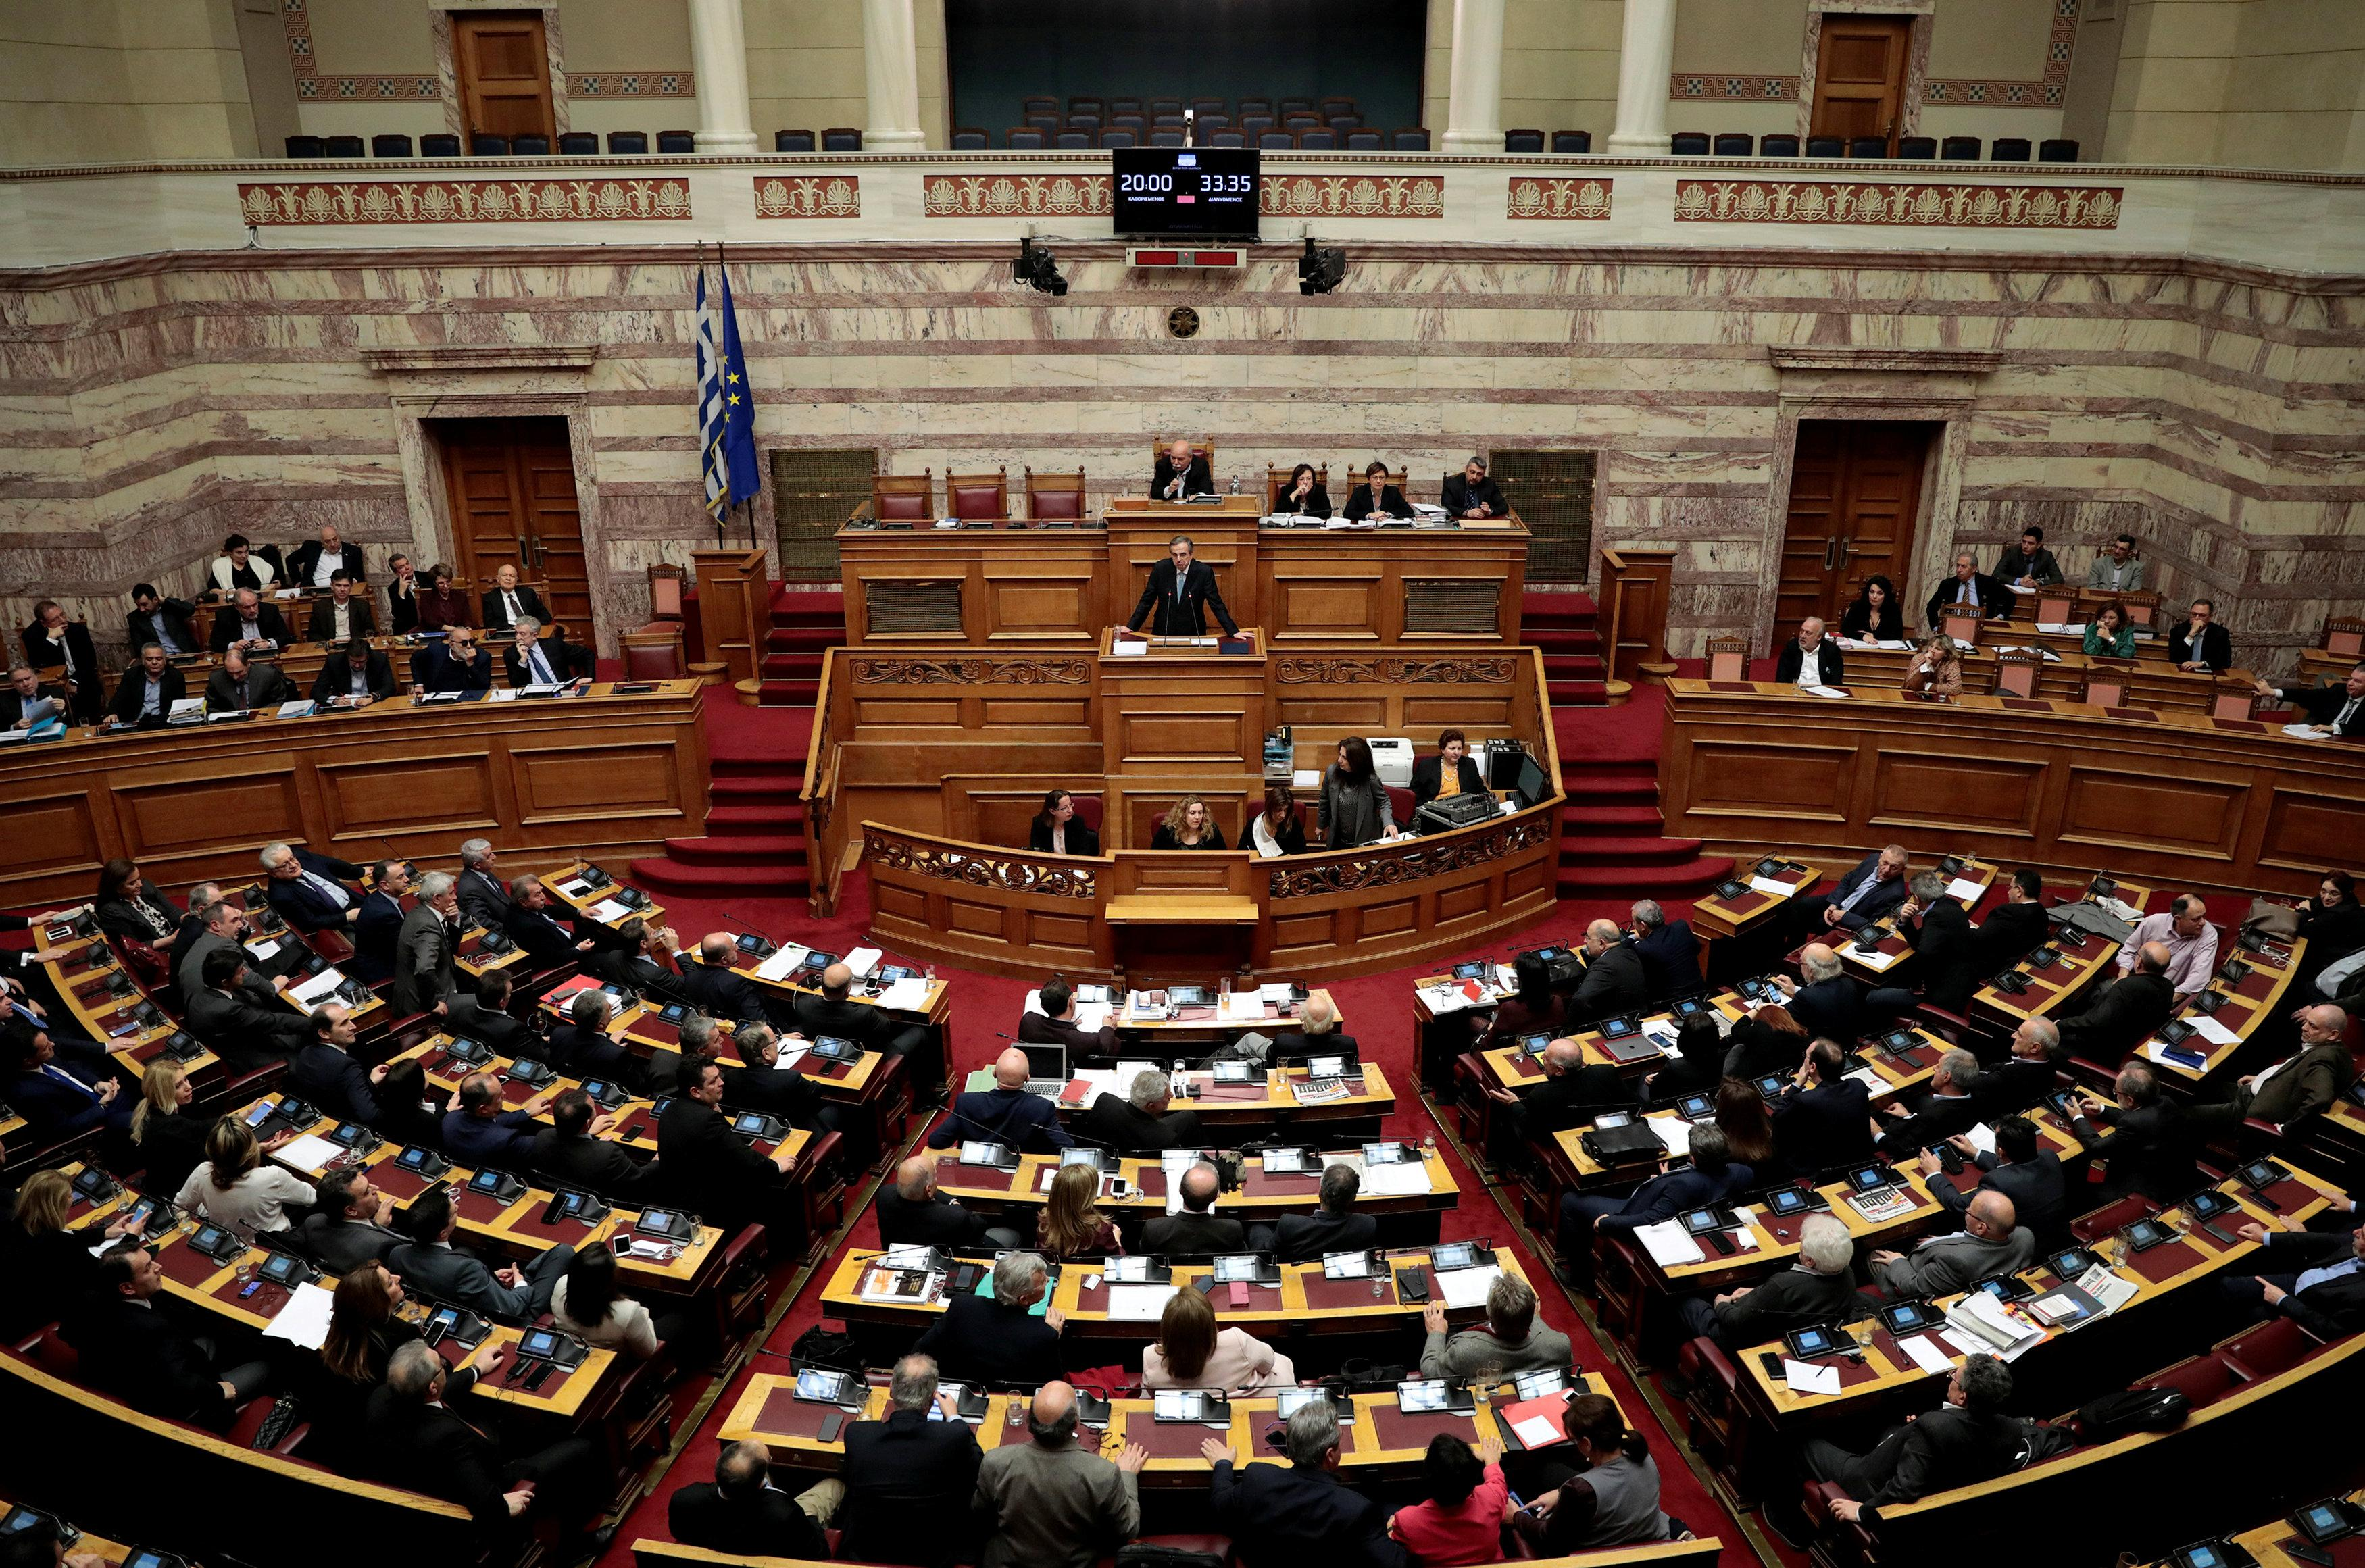 Former Greek Prime Minister Antonis Samaras addresses lawmakers during a parliamentary session before a vote on setting up a special committee which will probe the role of ten politicians in a case which involves alleged bribery by Swiss drugmaker Novartis, in Athens, Greece, February 21, 2018. Alkis Konstantinidis